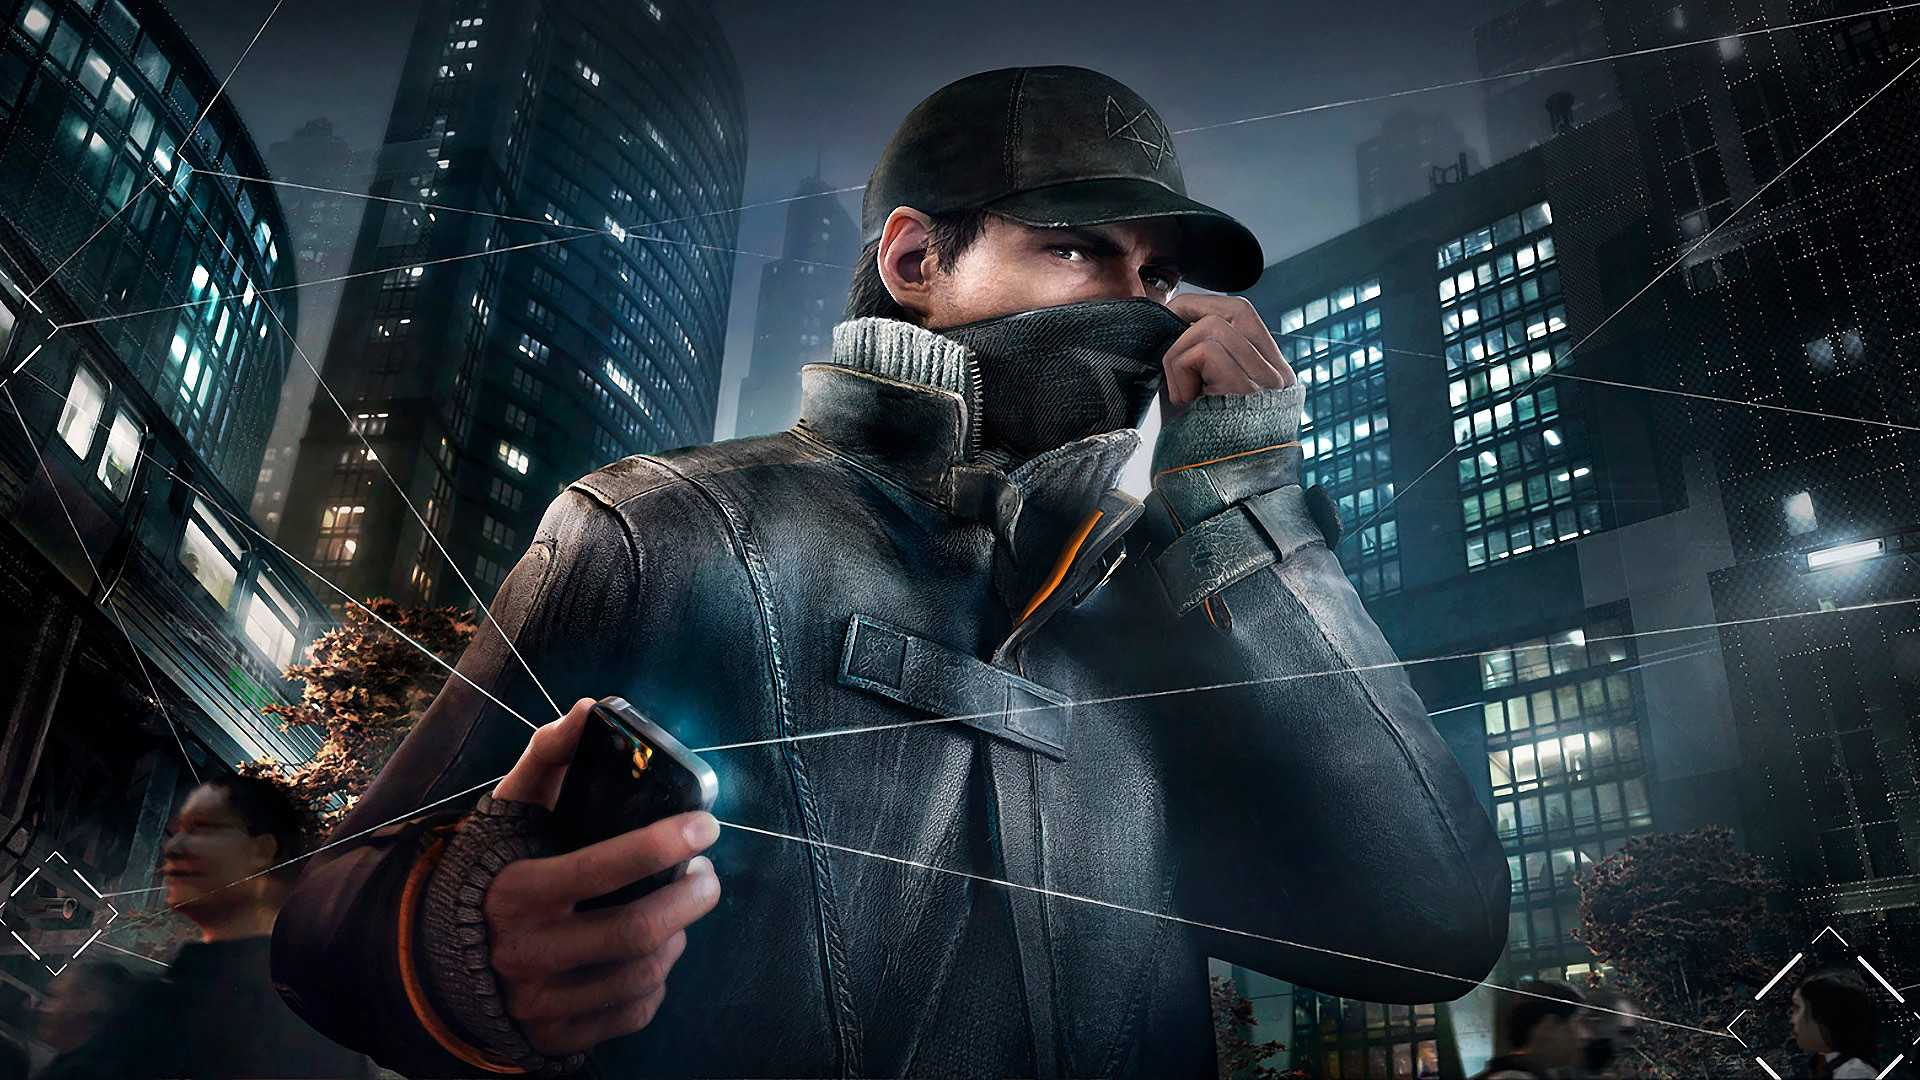 Xbox One, Xbox 360 Games with Gold Announced, Watch Dogs, AC III and More